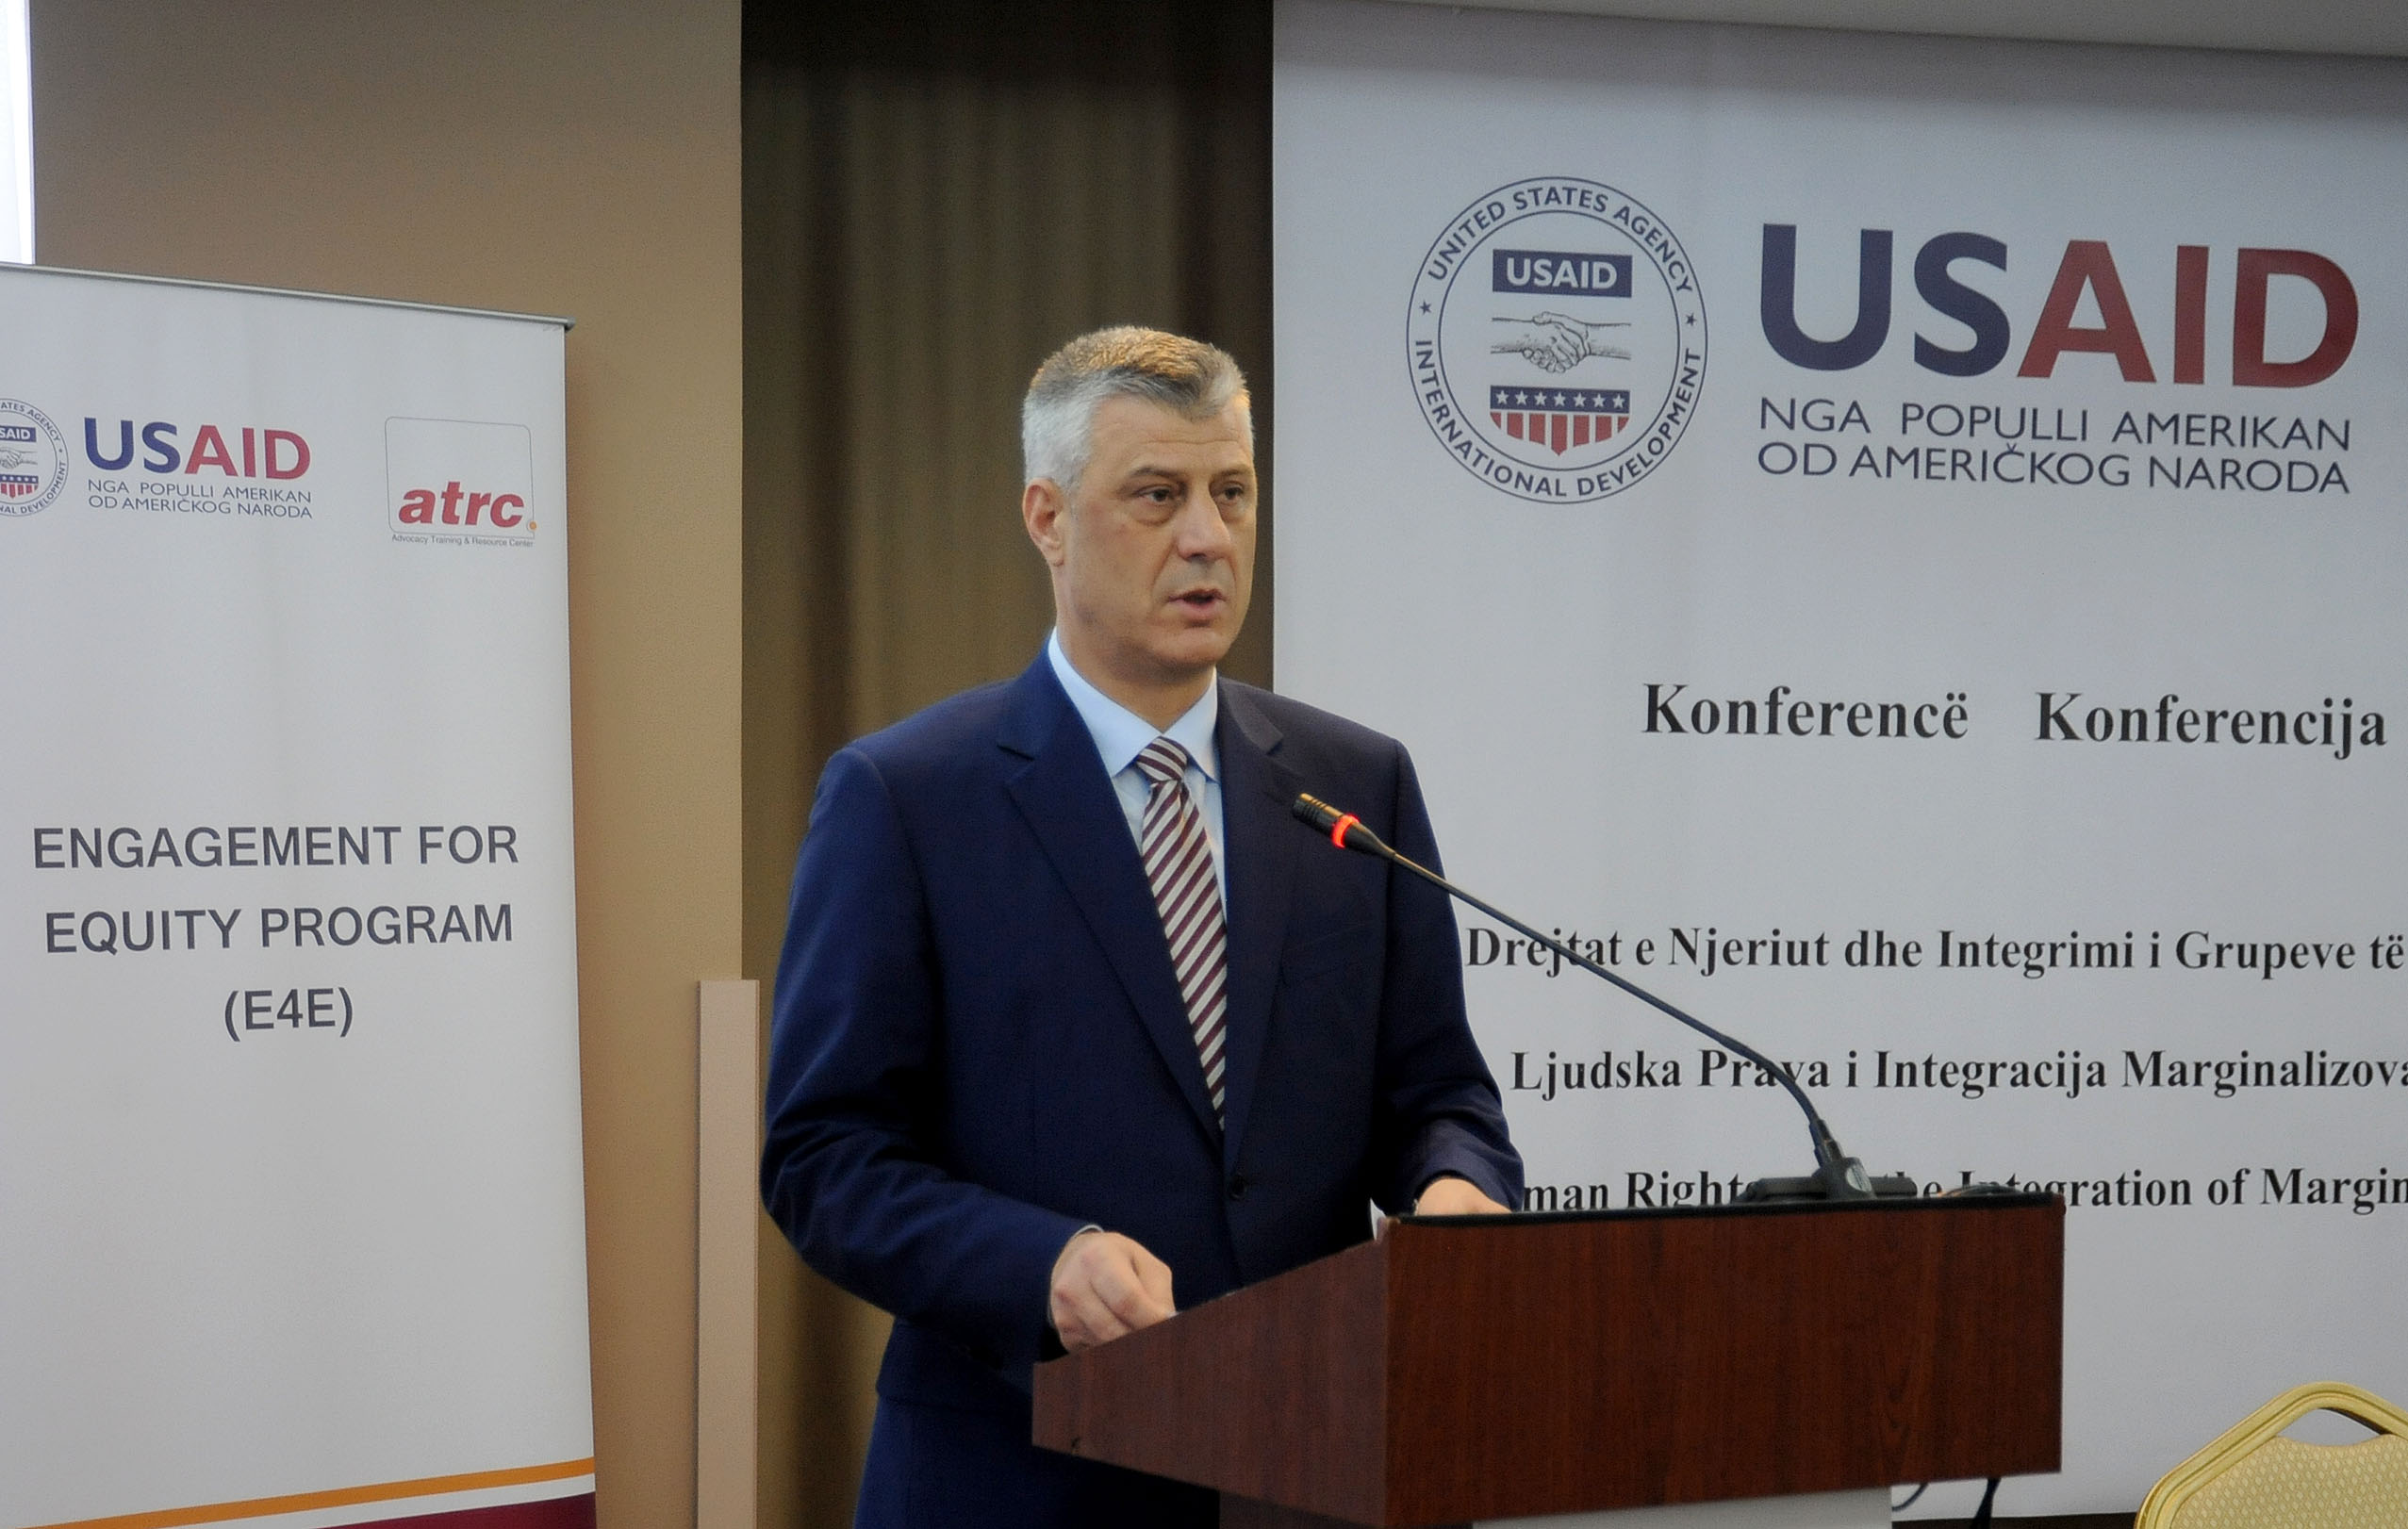 The President: The state of Kosovo is built on the values of human rights